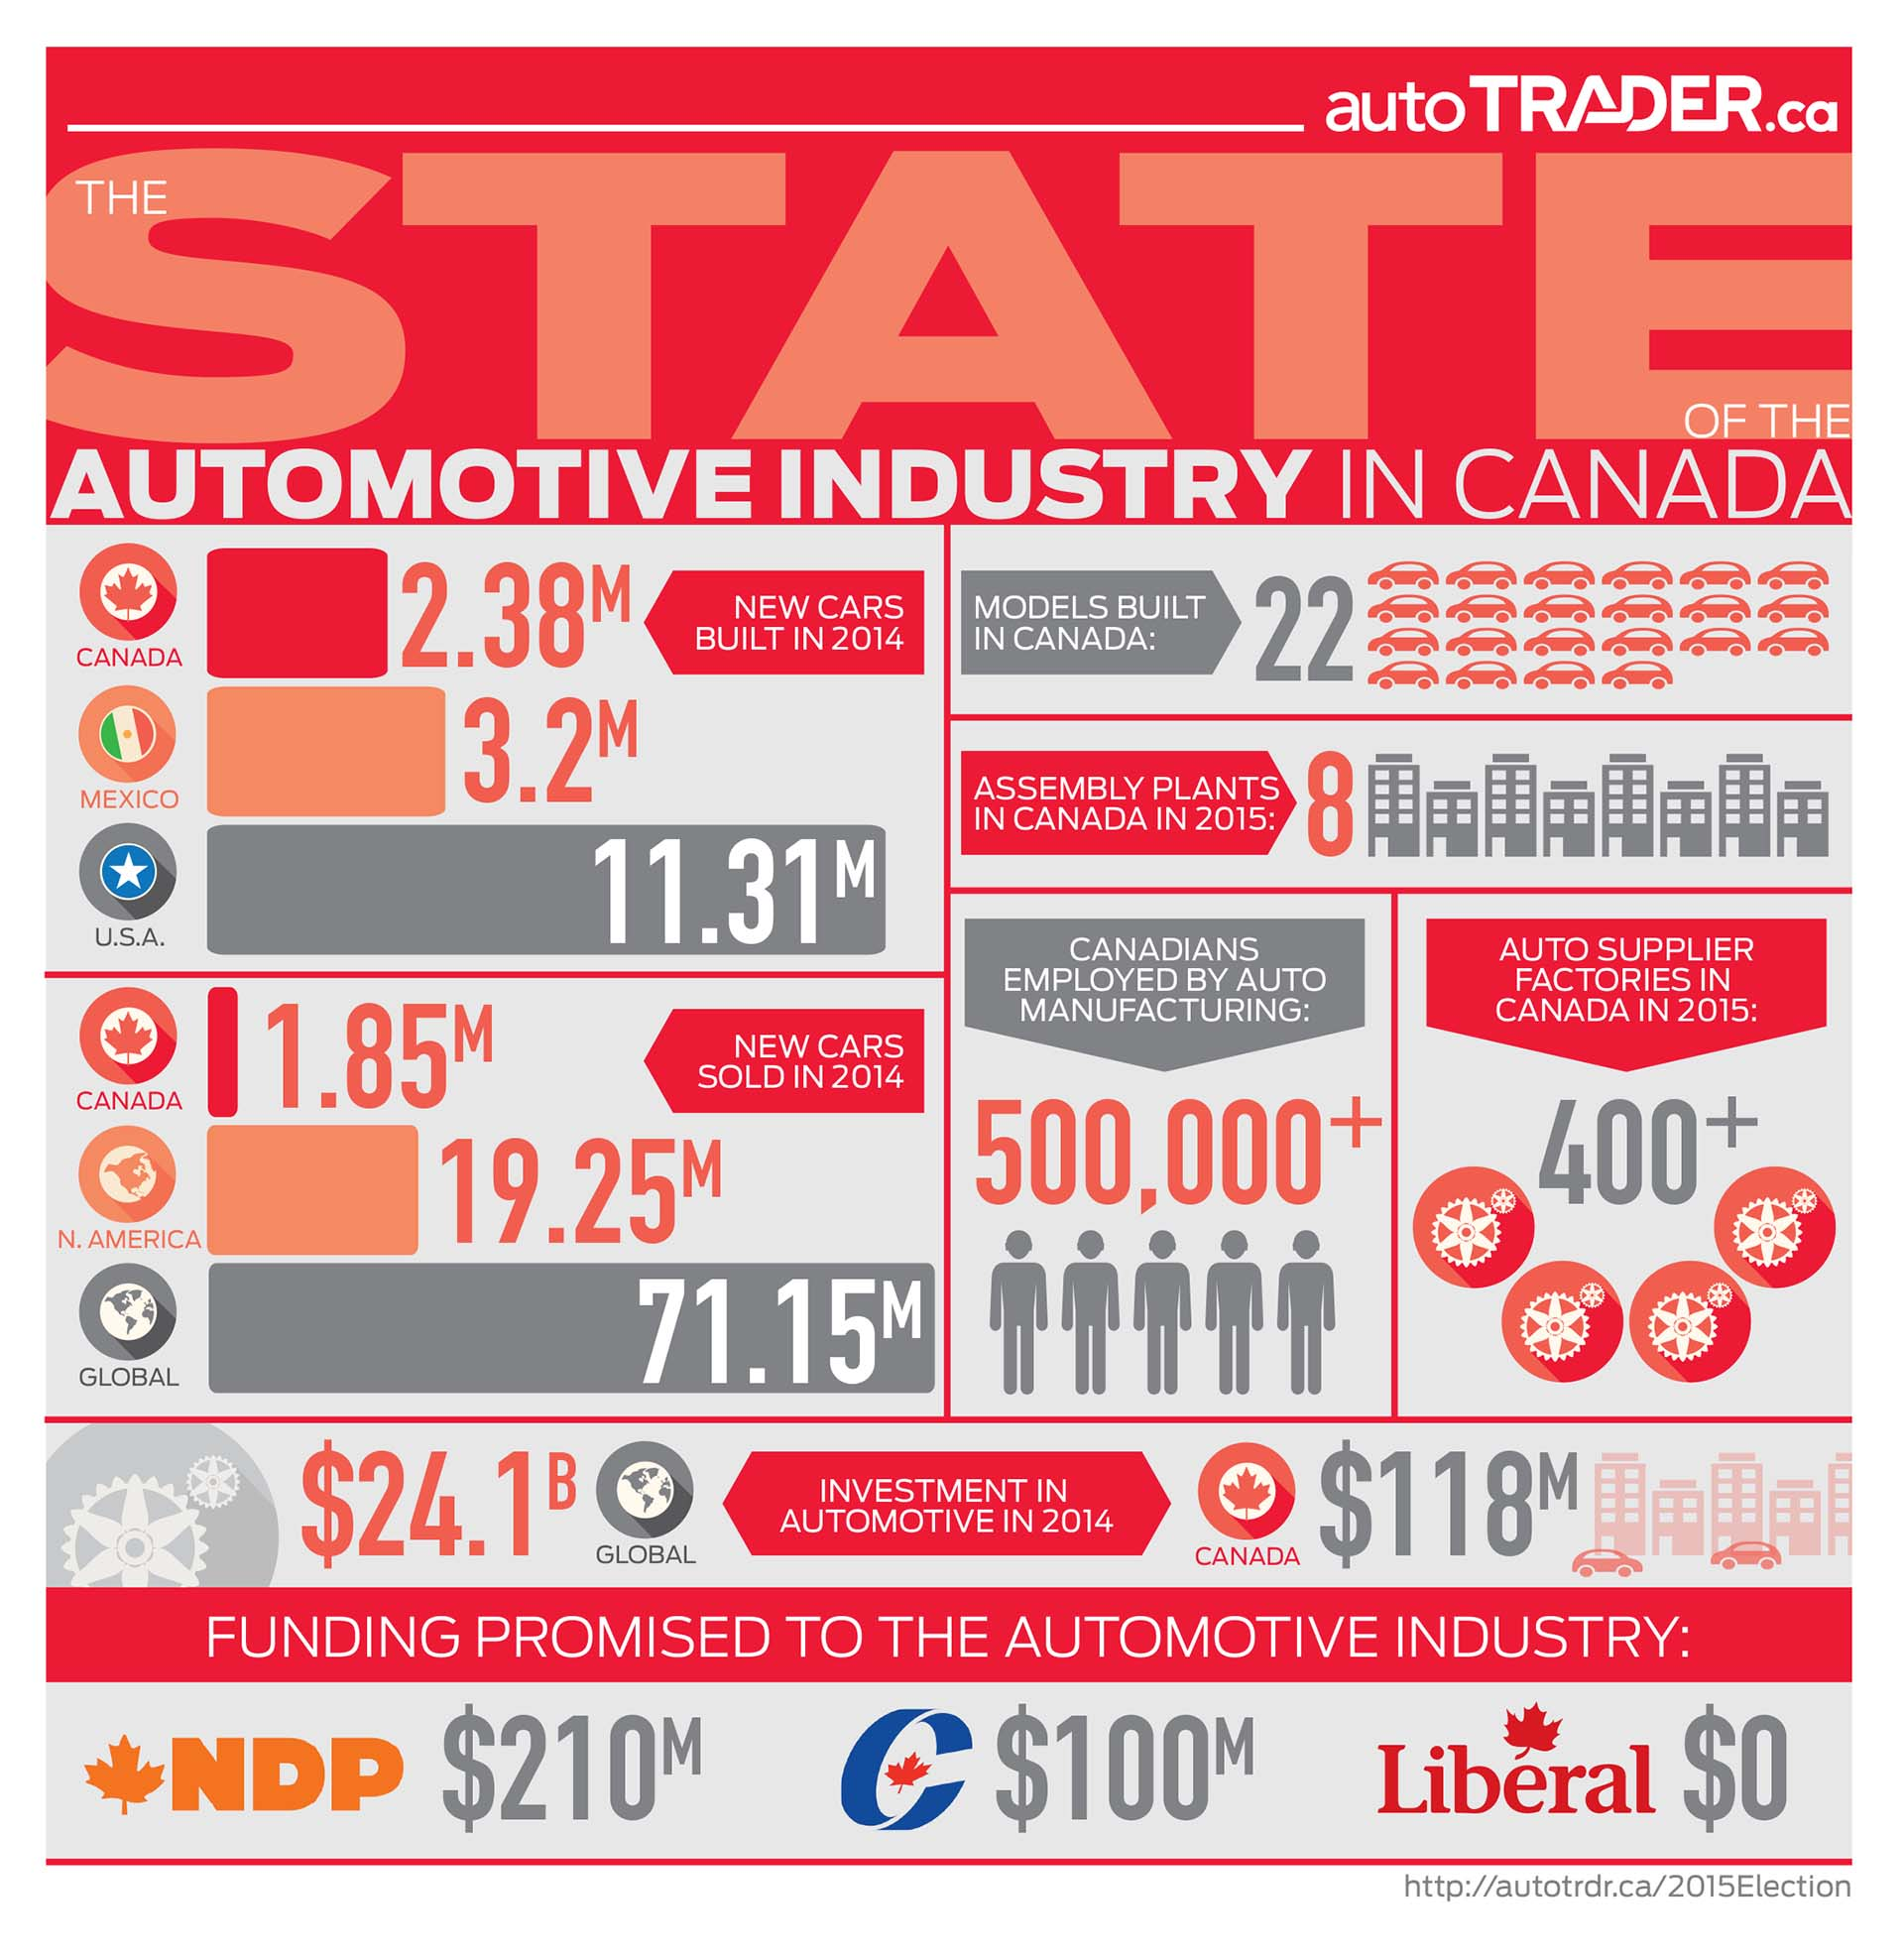 State of the Automotive Industry in Canada